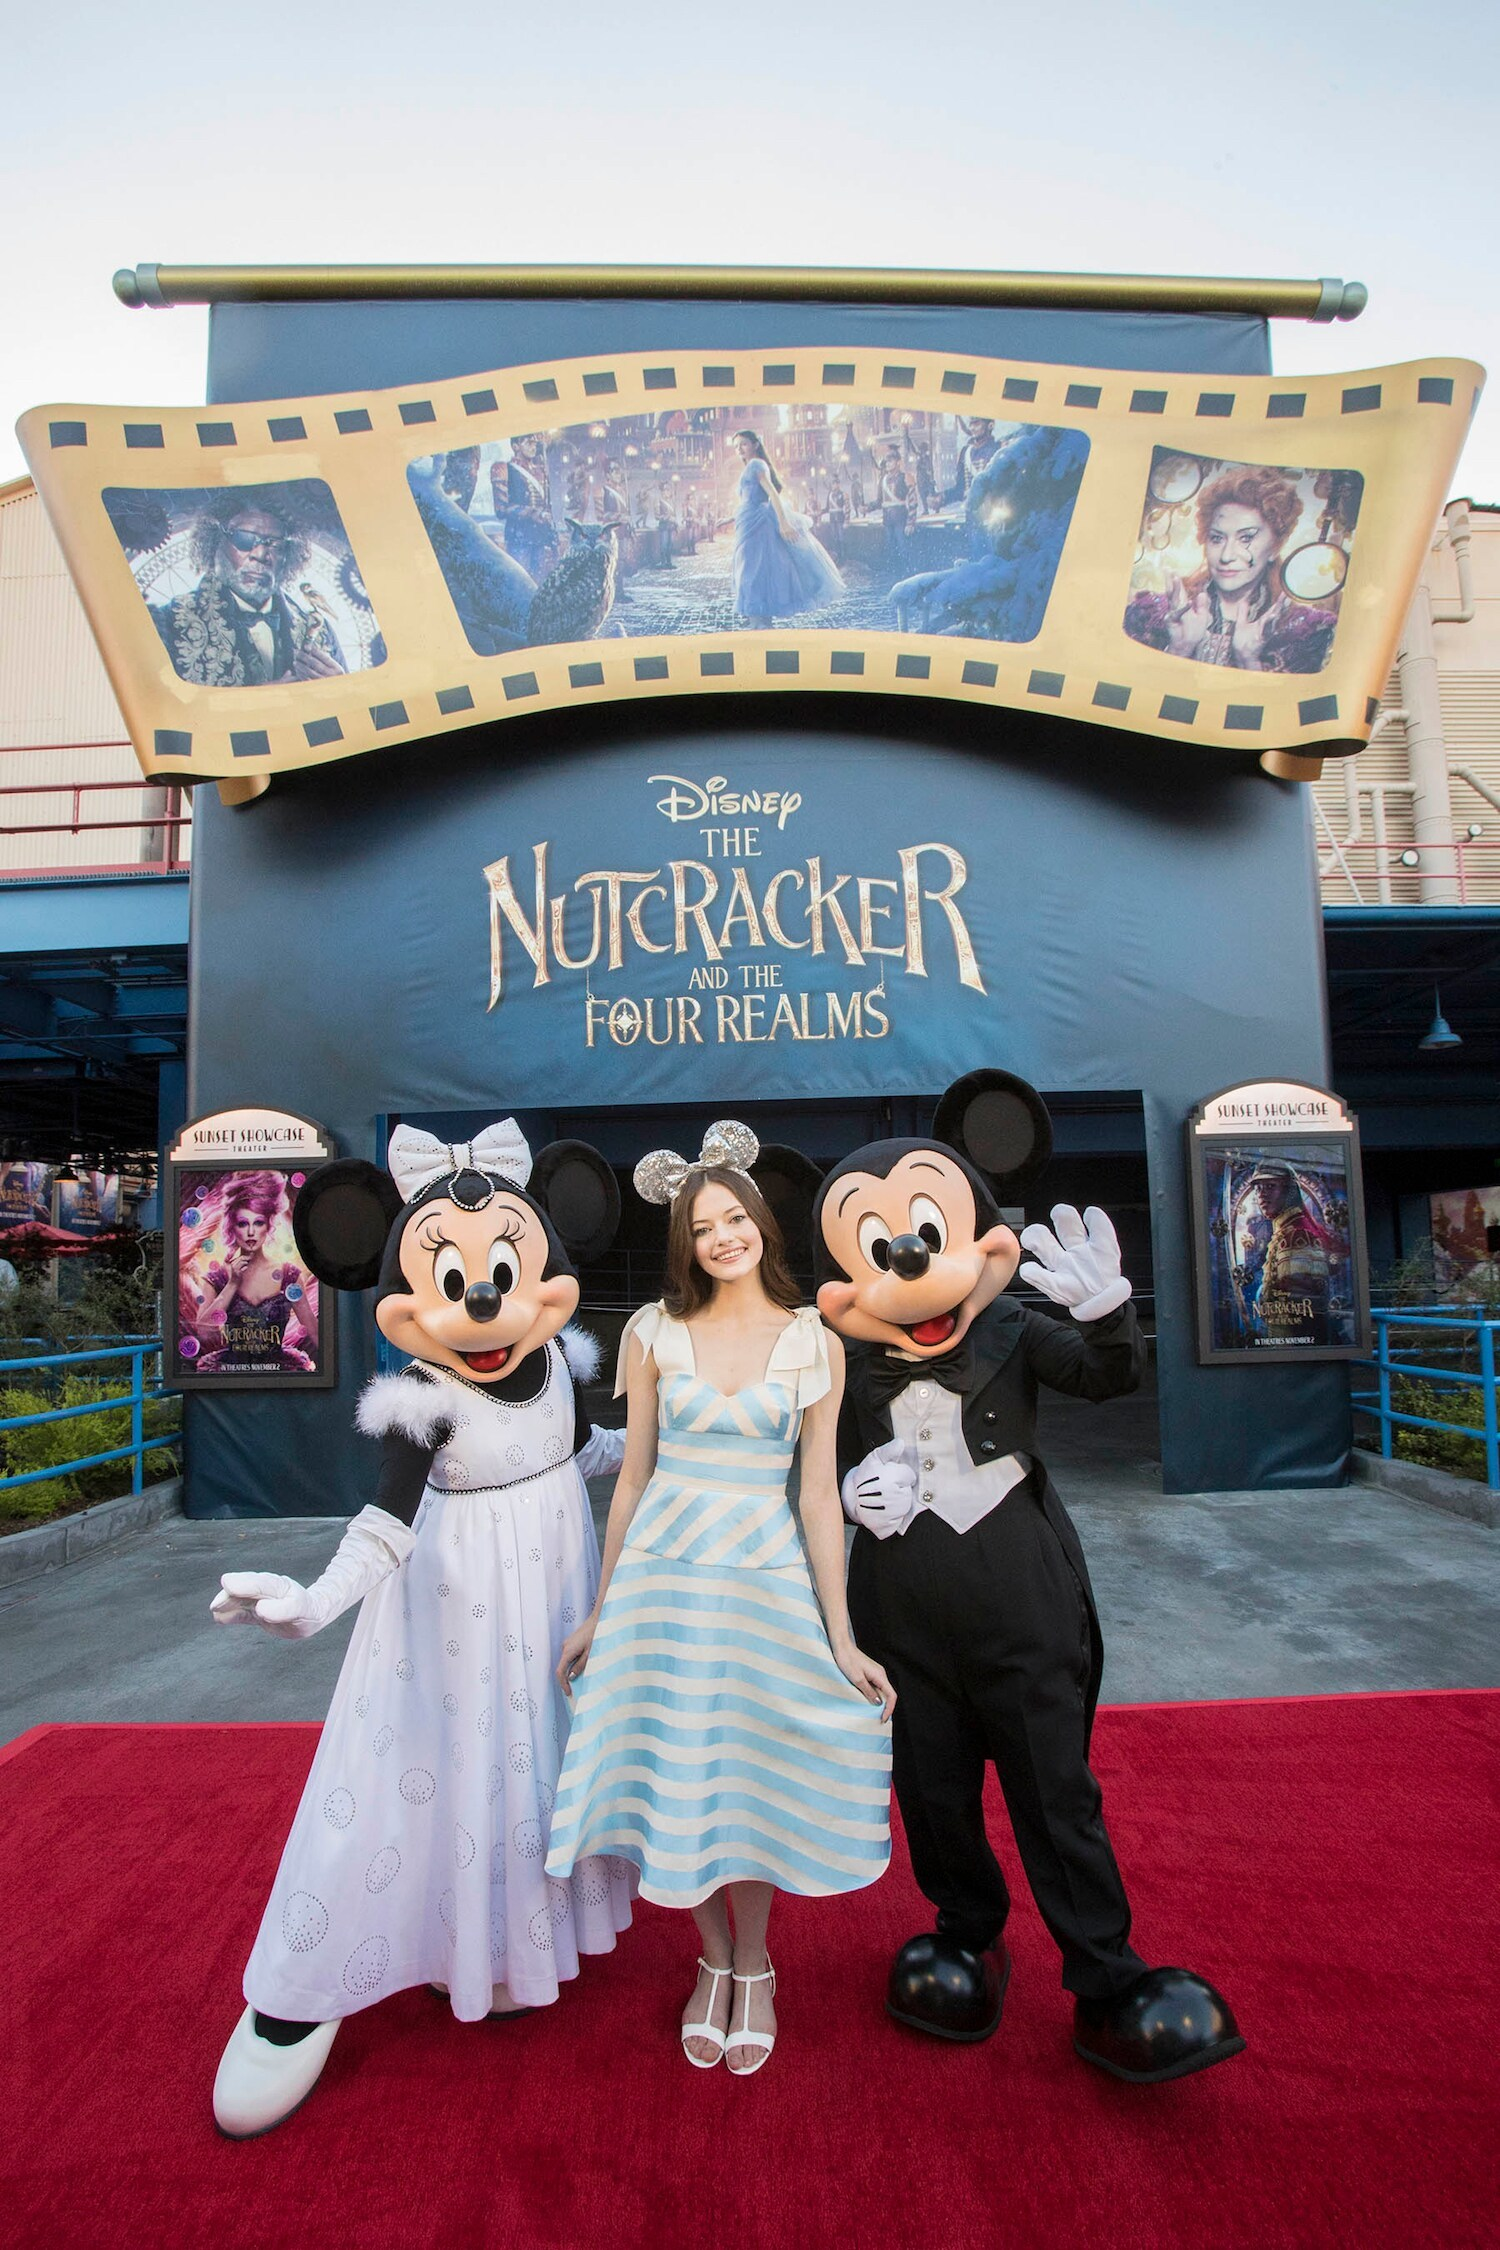 Mackenzie Foy posing with Minnie and Mickey at Disney The Nutcracker and the Four Realms